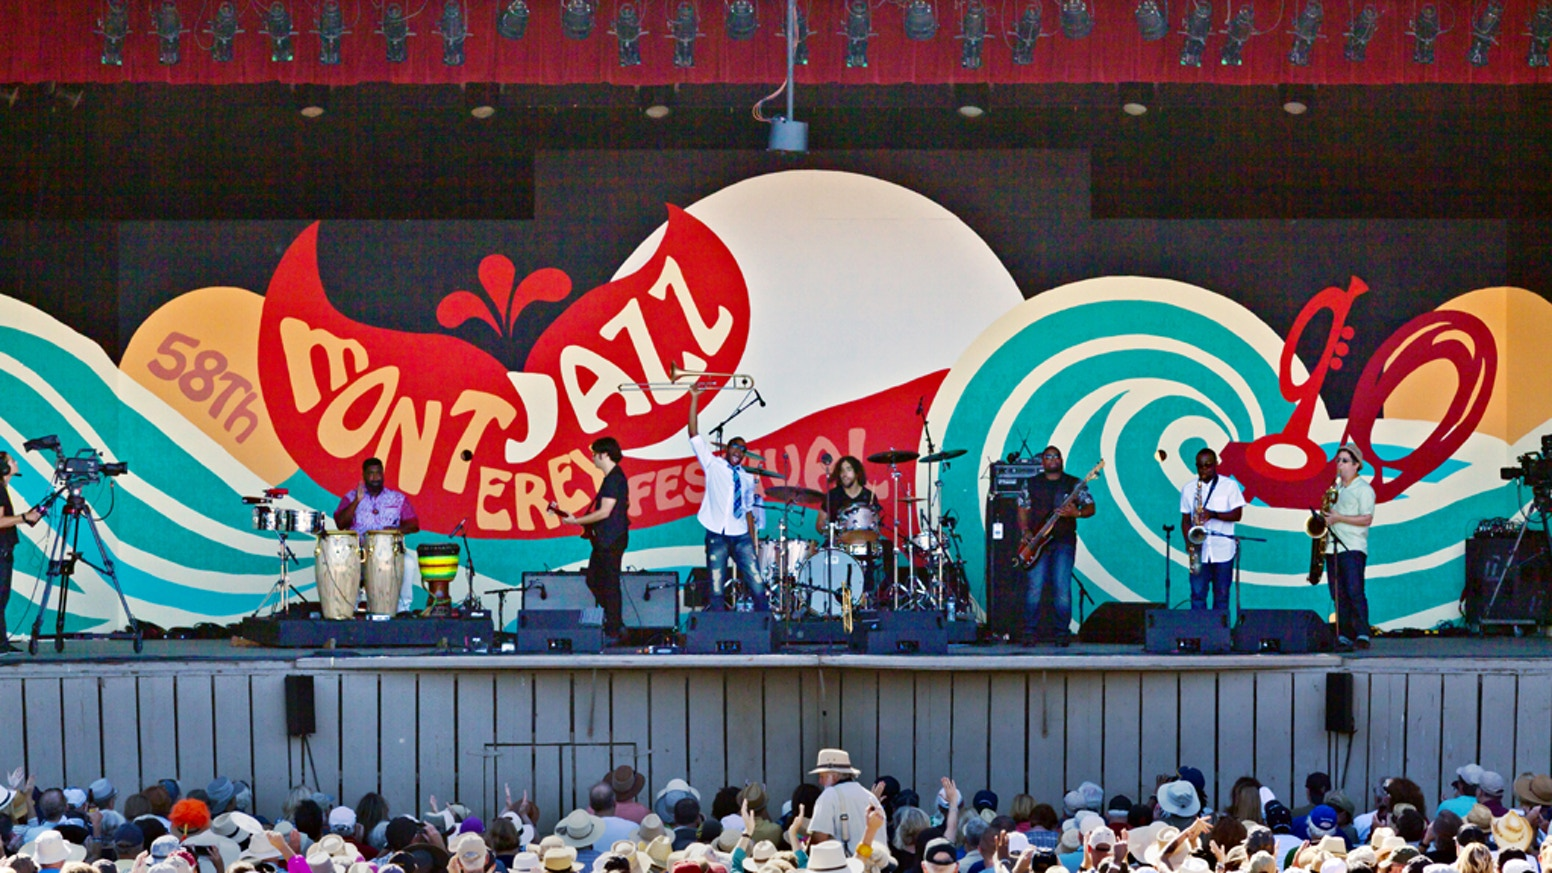 60 Years of Jazz: The Monterey Jazz Festival, a documentary